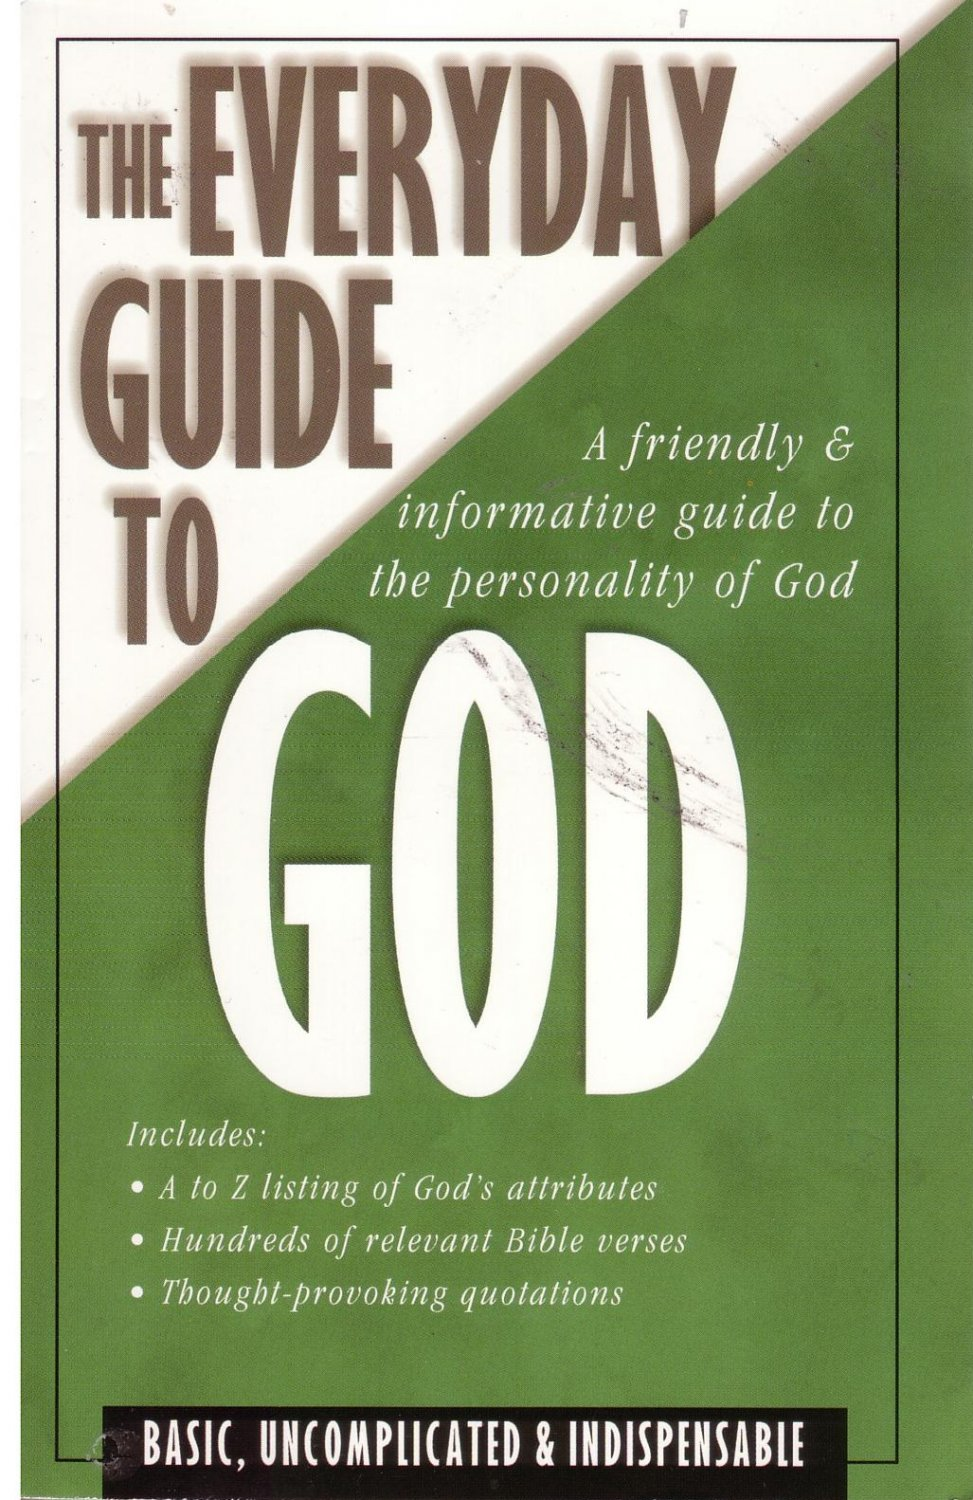 The Everyday Guide to God by Amy Ng Wong *